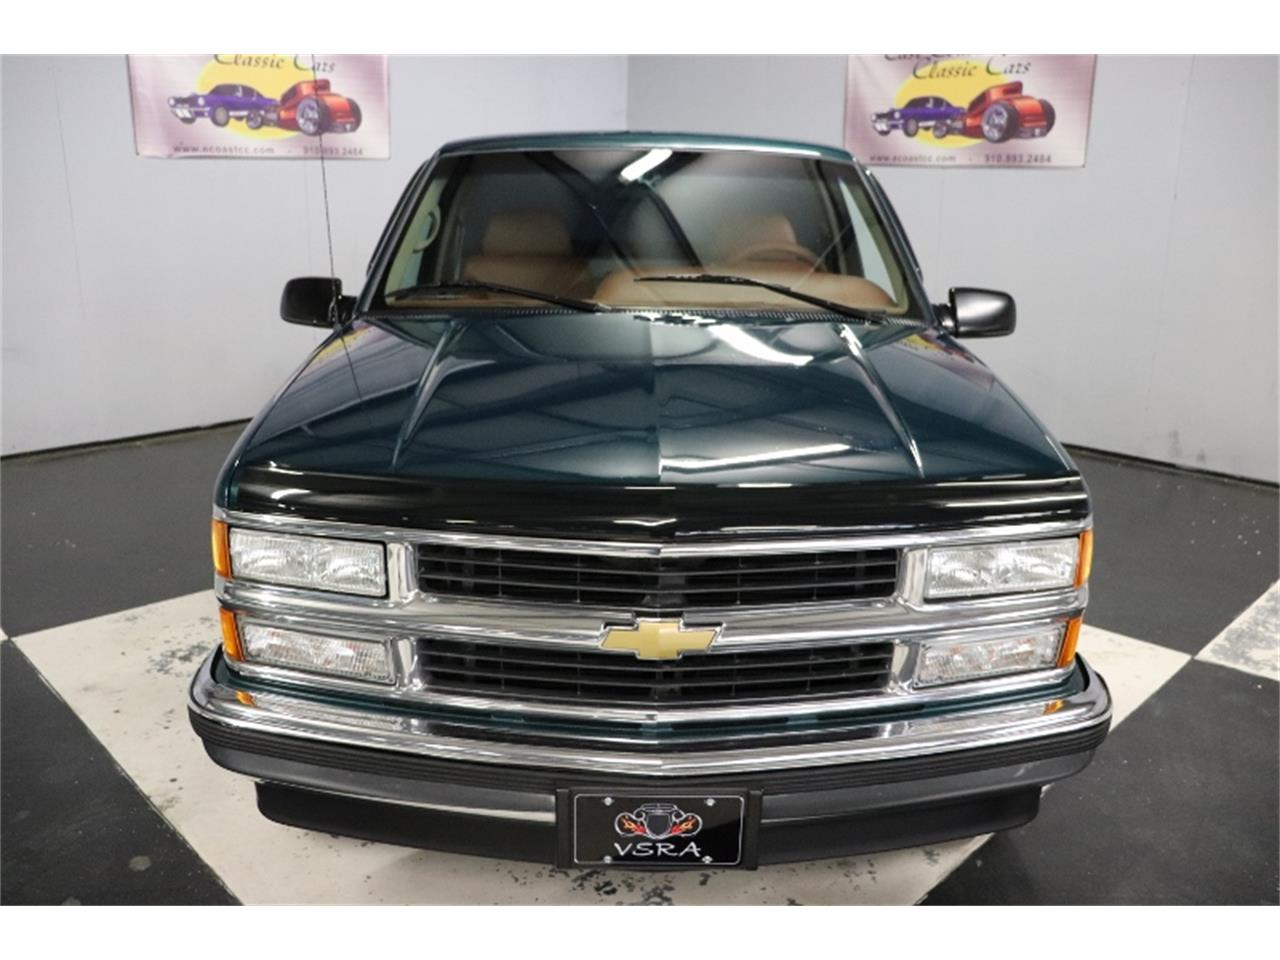 1996 Chevrolet Silverado (CC-1335391) for sale in Lillington, North Carolina